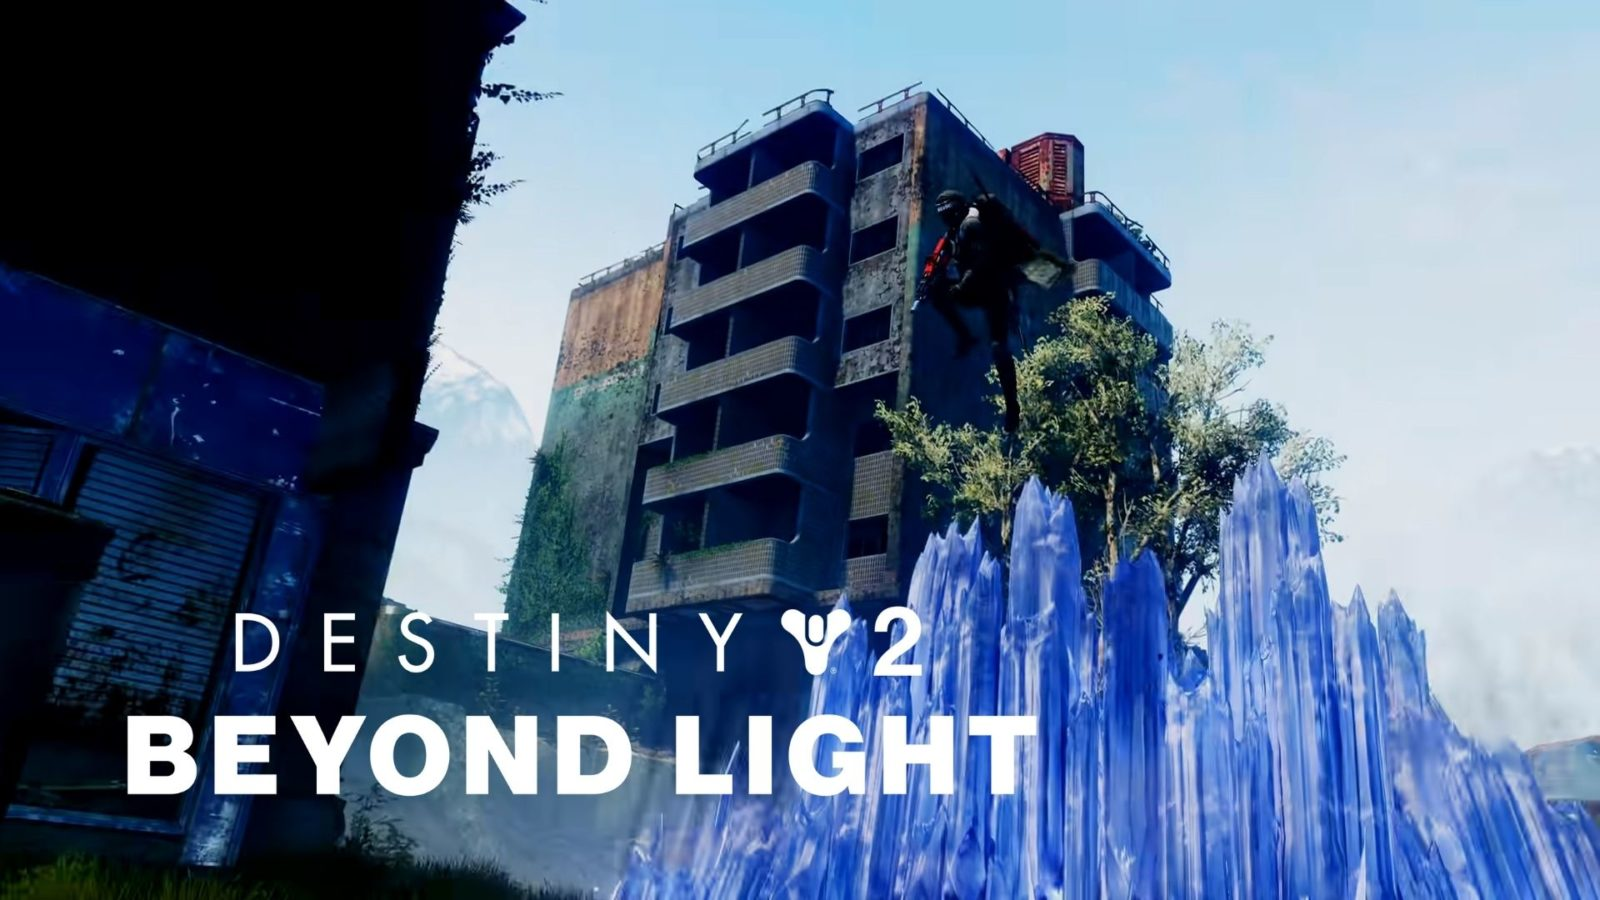 stasis aspects fragments in destiny 2 beyond light